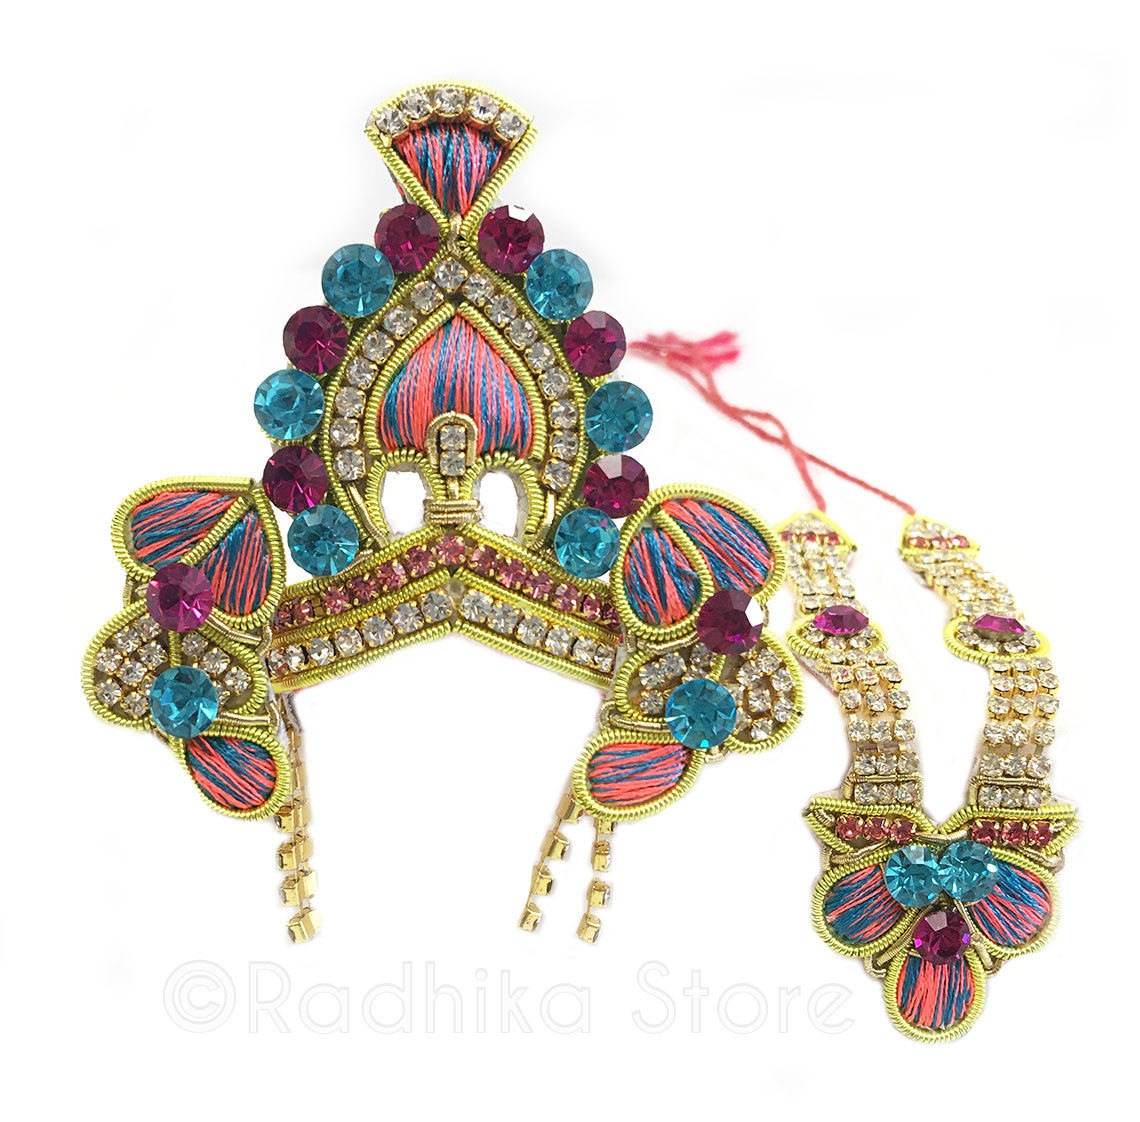 Braja - Deity Crown And Necklace Set -With Earrings - Peach-Teal And Fuchsia